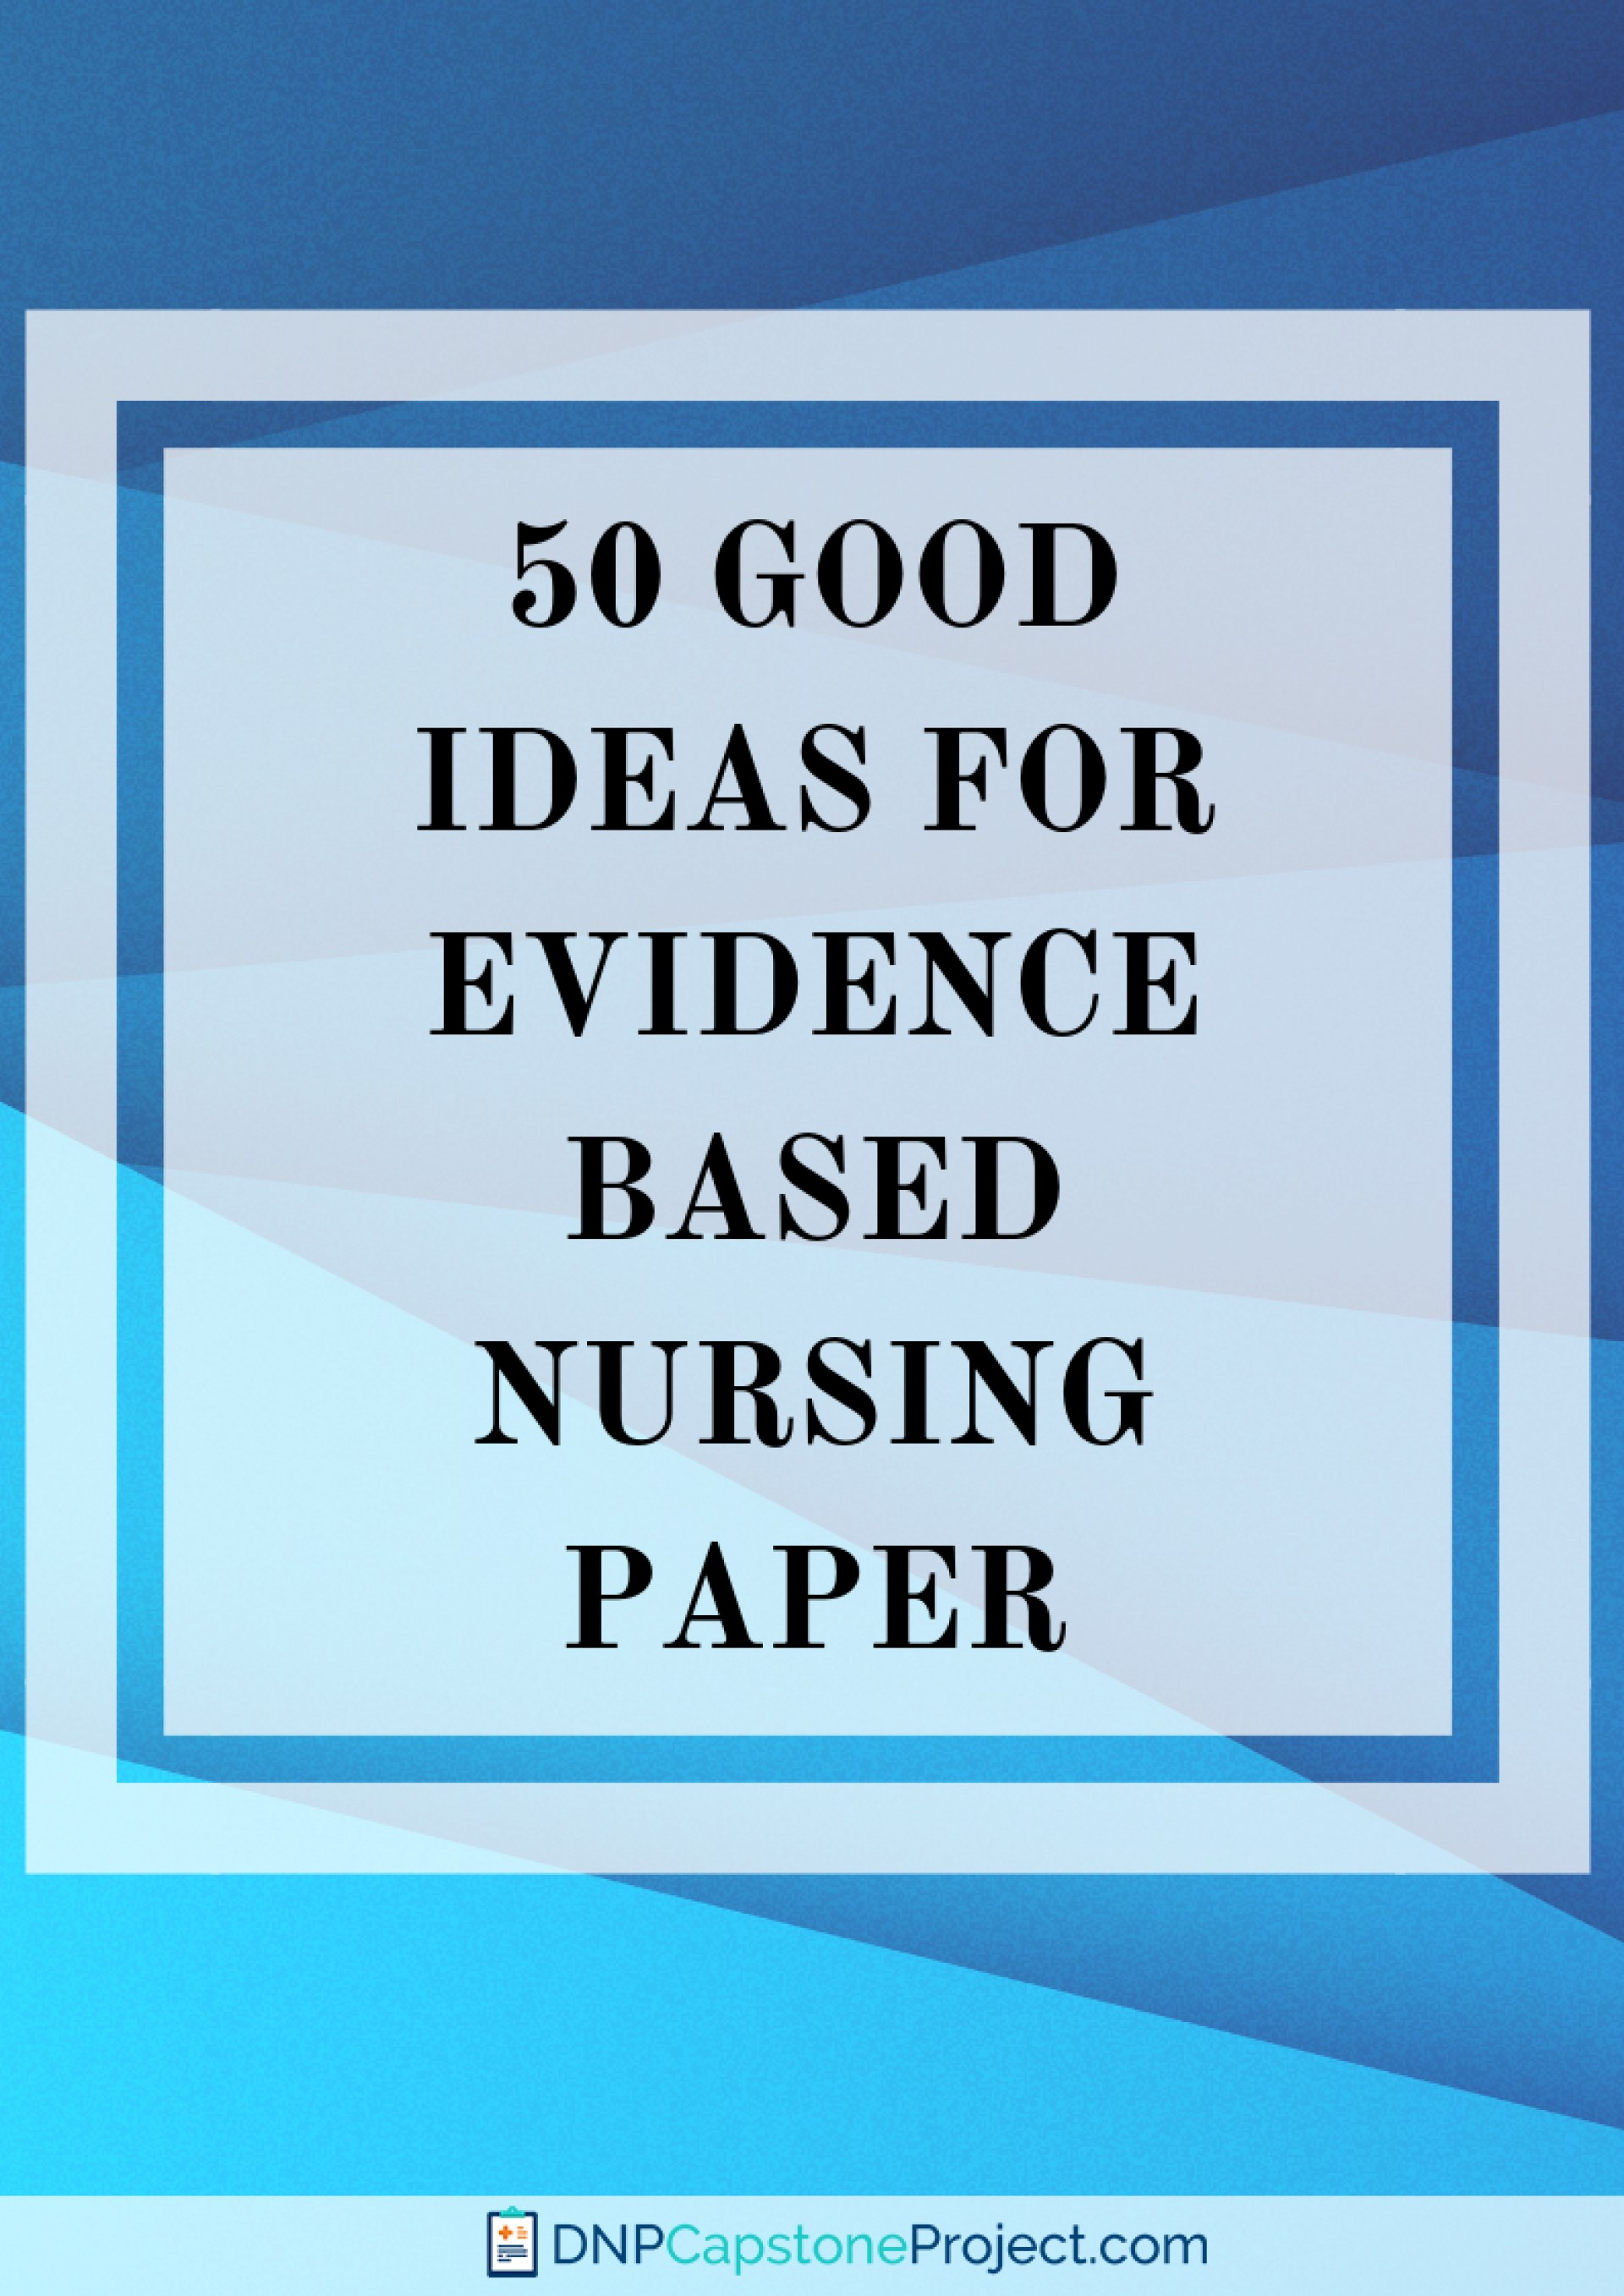 016 Eye Catching Nursing Evidence Based Practice Topics Research Unforgettable Paper Easy Neonatal Pediatric 1920